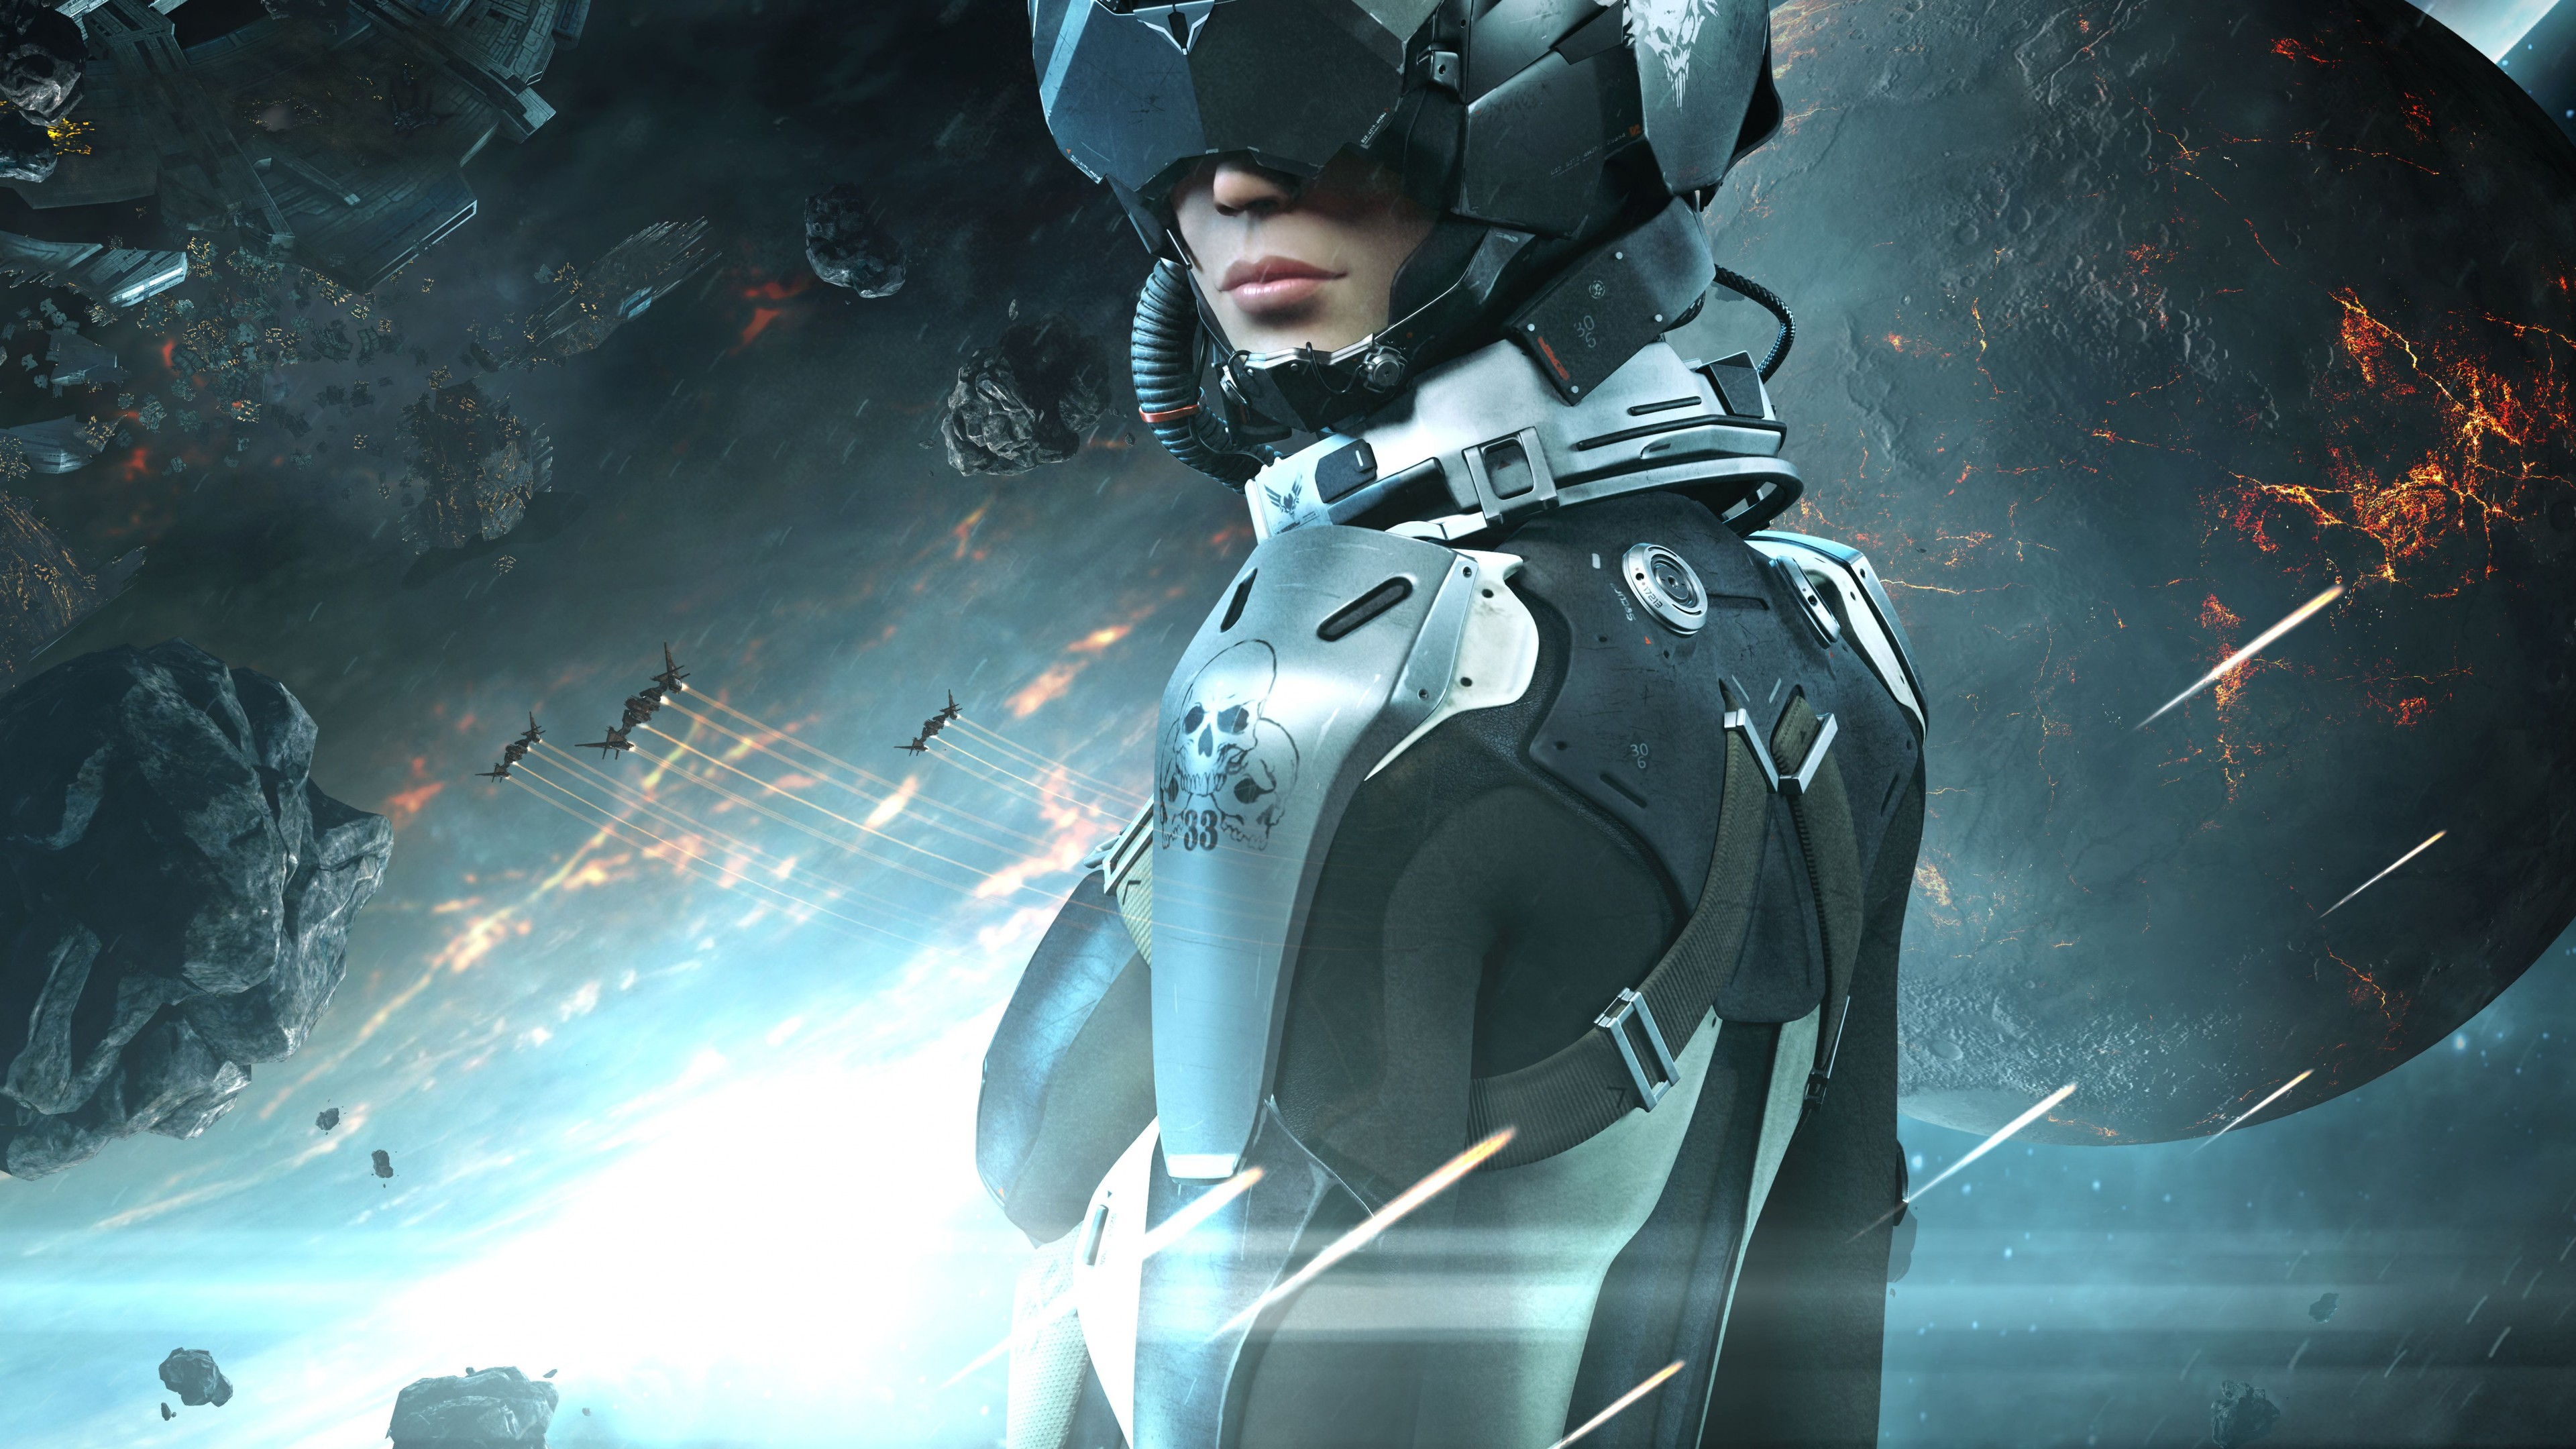 Pc Wallpapers For Girls Wallpaper Eve Valkyrie Best Games 2015 Game Space Sci